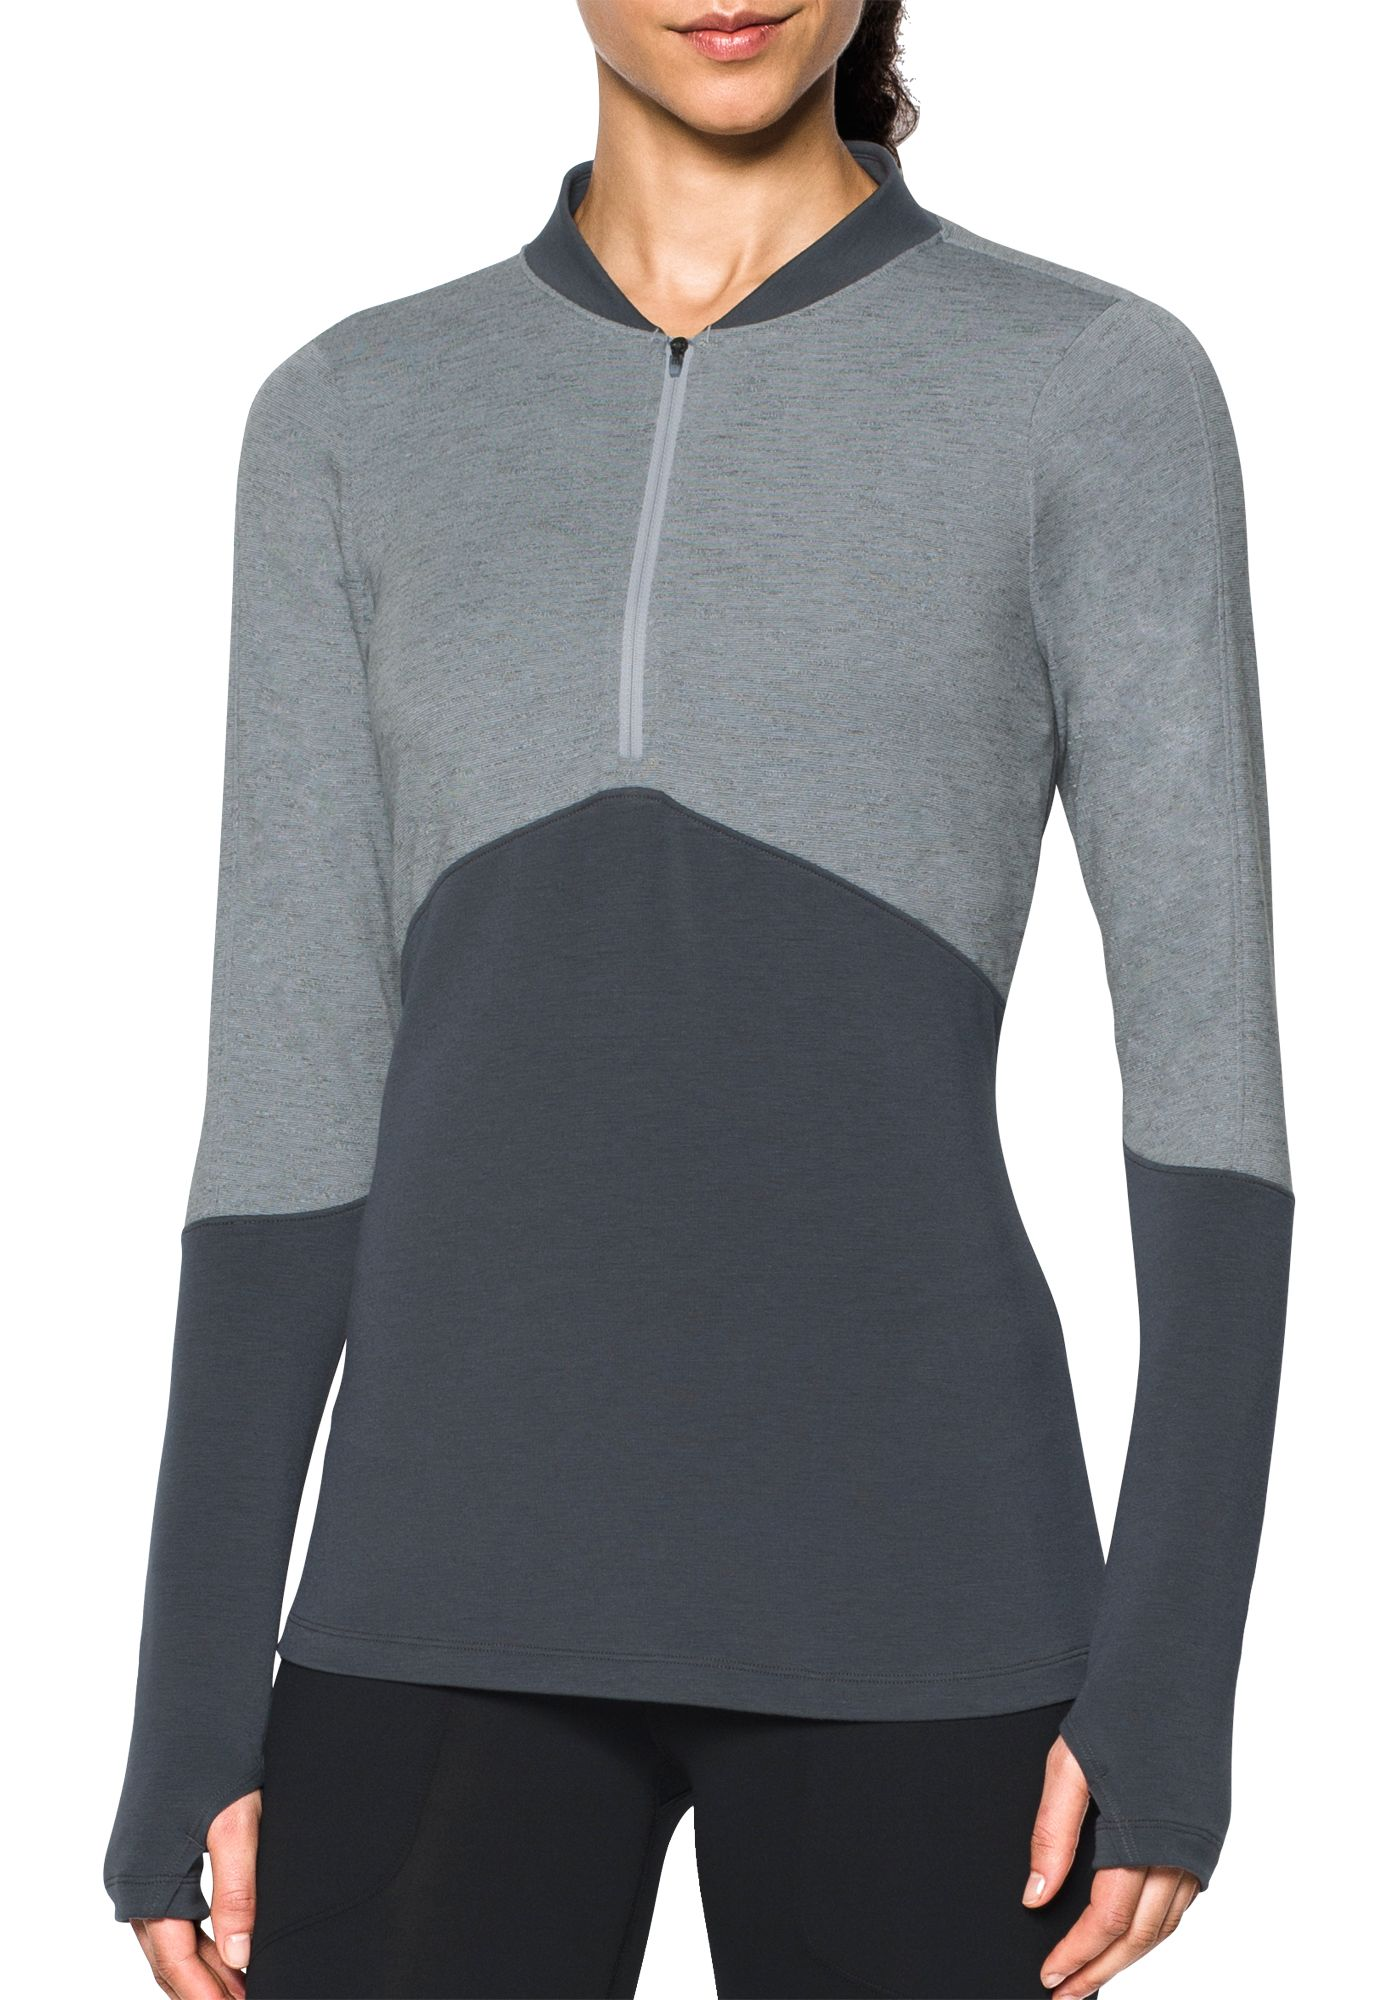 Under Armour Women's Threadborne 1/2-Zip Mock